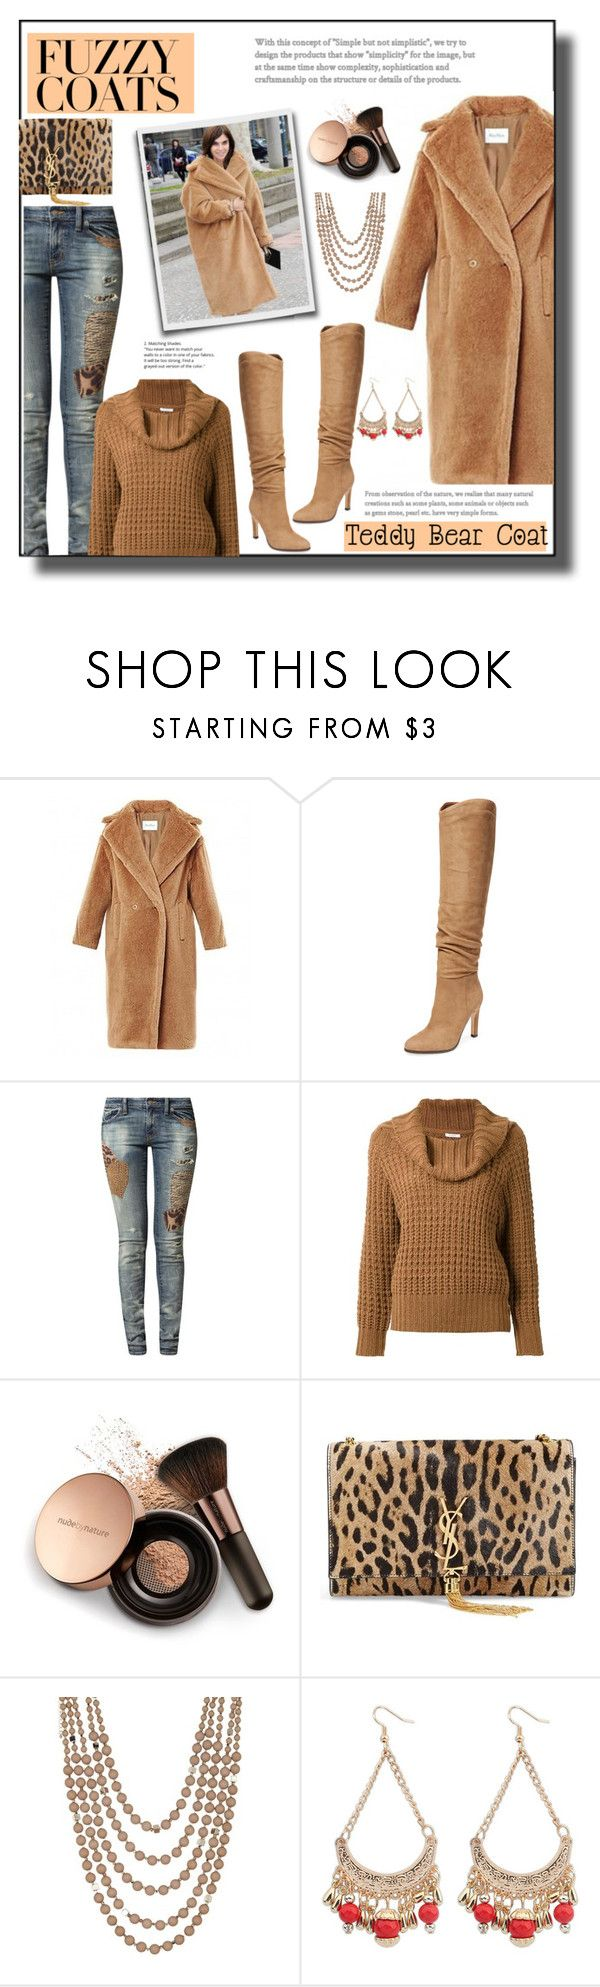 """Keep it Cozy:  Fuzzy Coats"" by cathy1965 ❤ liked on Polyvore featuring MaxMara, Sigerson Morrison, Ralph Lauren, En Route, Nude by Nature, Yves Saint Laurent, Madison Parker, Chicnova Fashion and fuzzycoats"